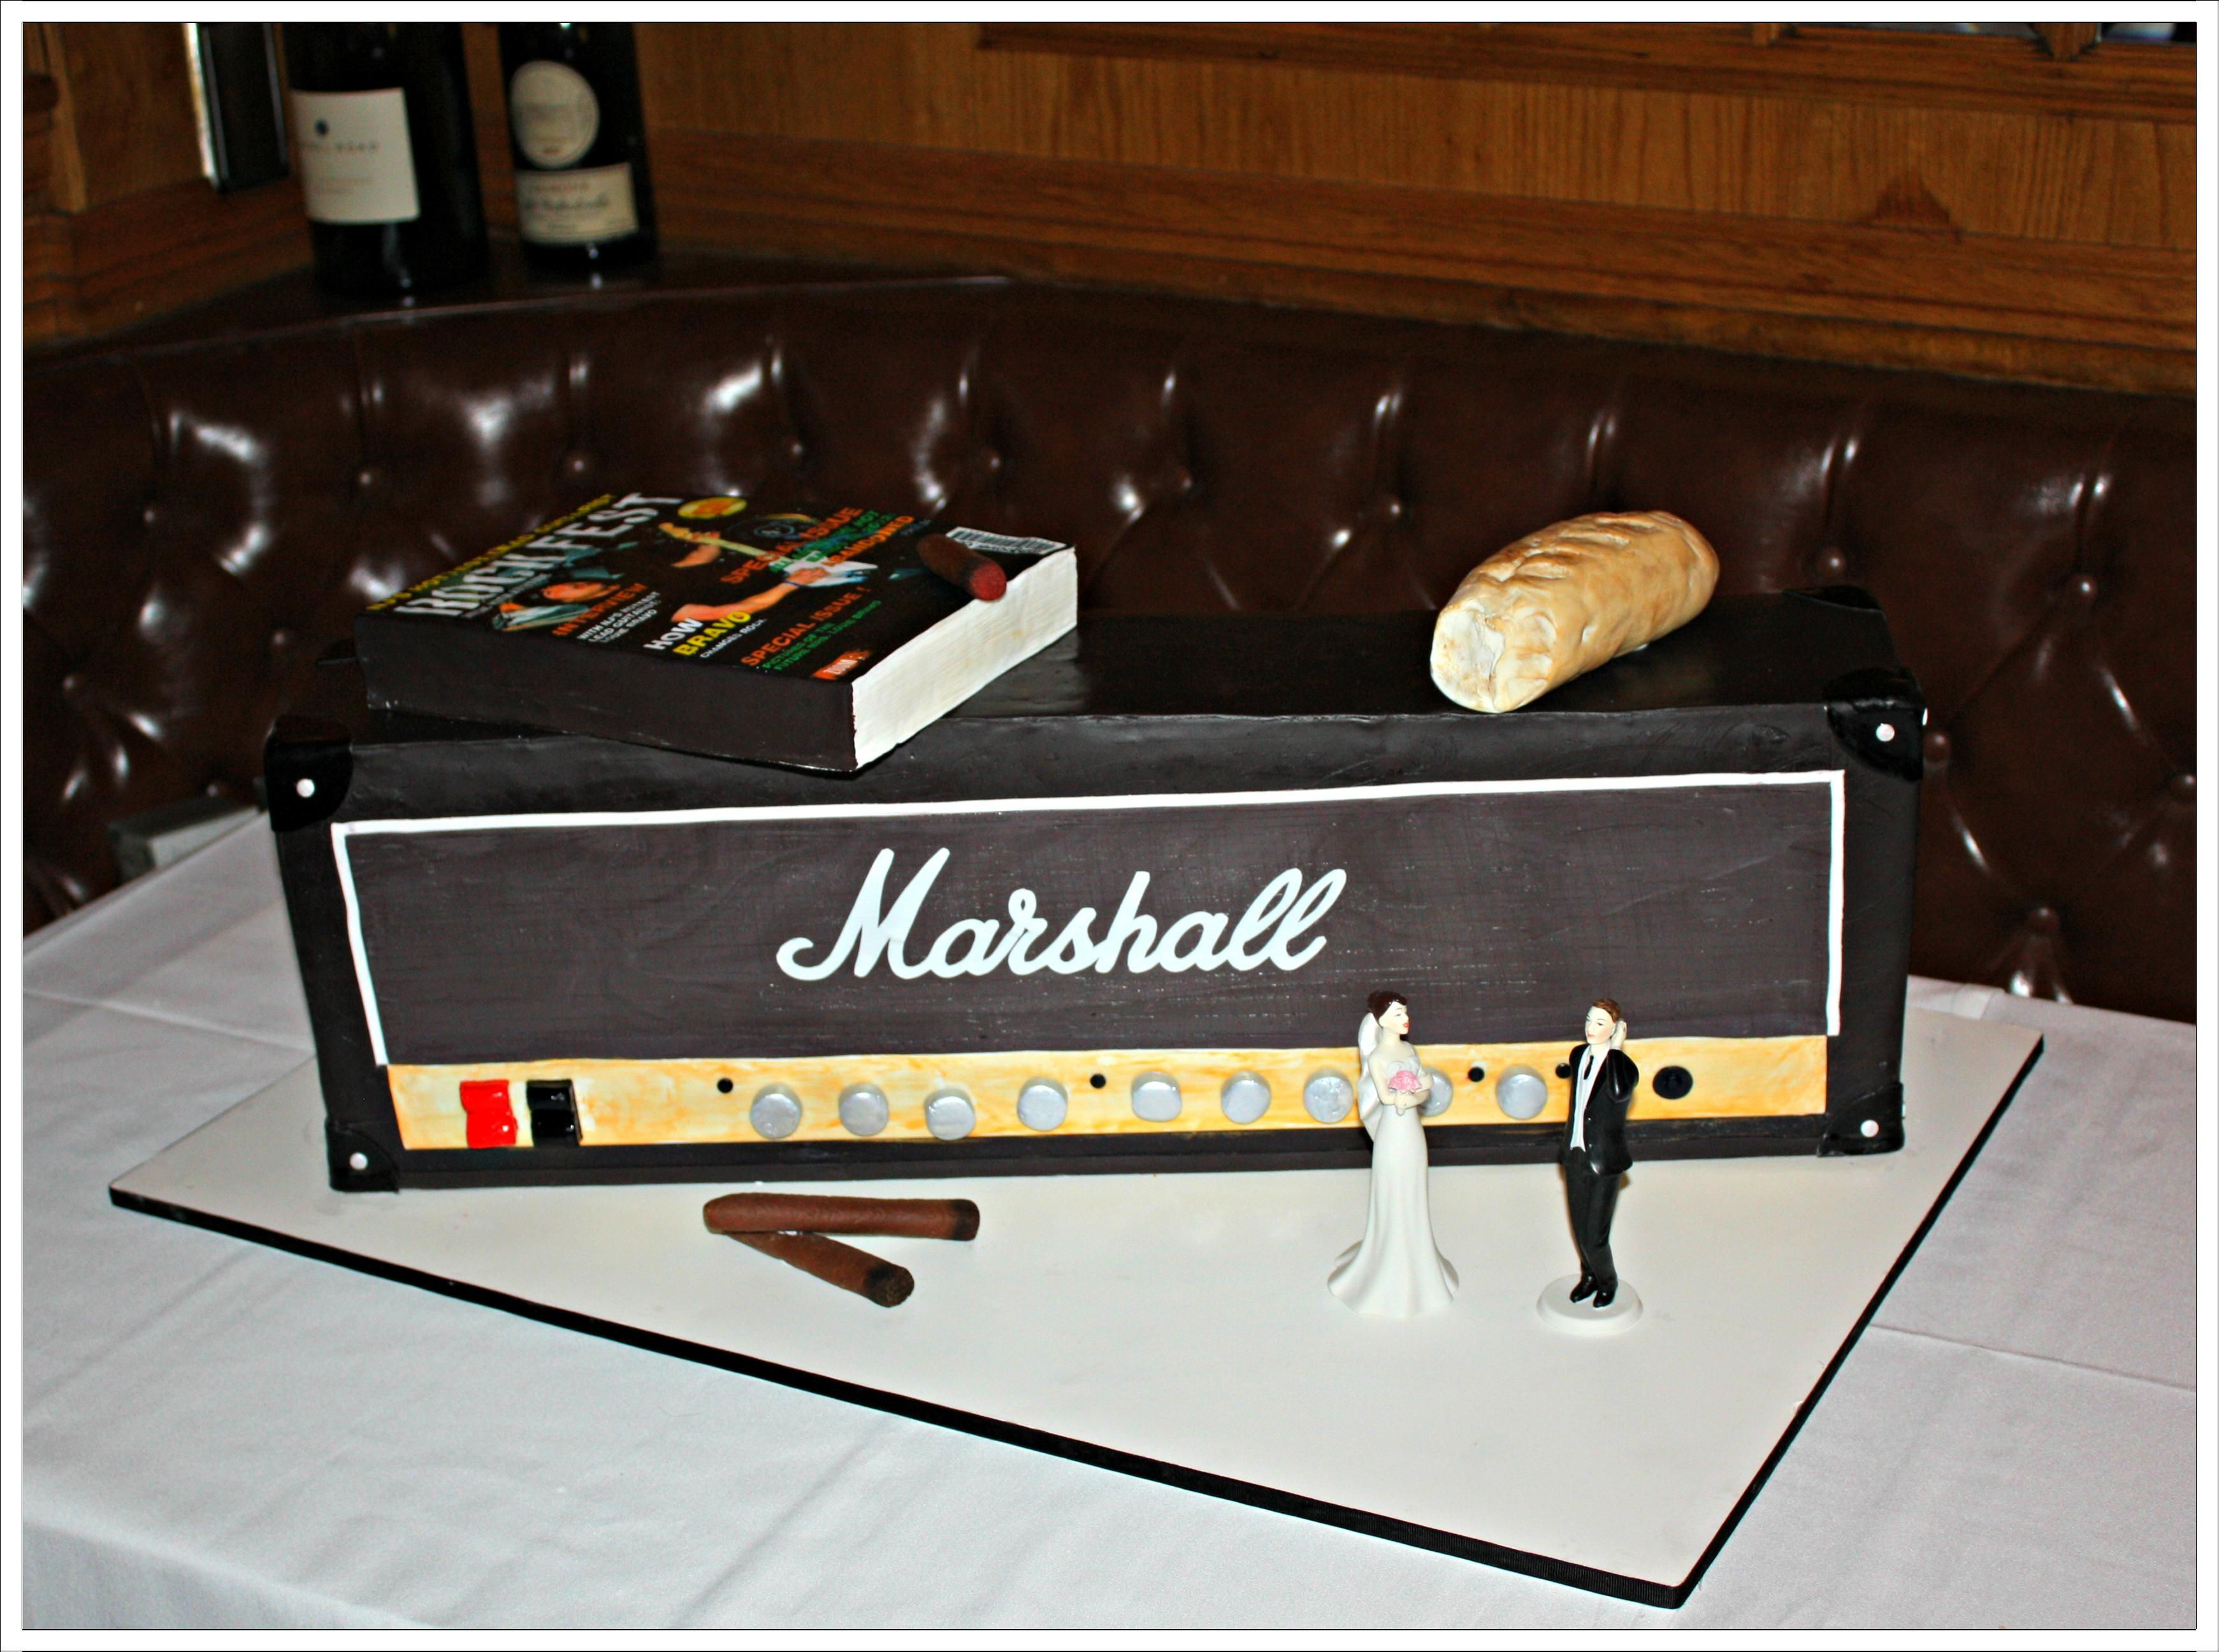 Marshall Amp Cake with edible magazine, cigars, and loaf of bread.  http://www.acakedream.com